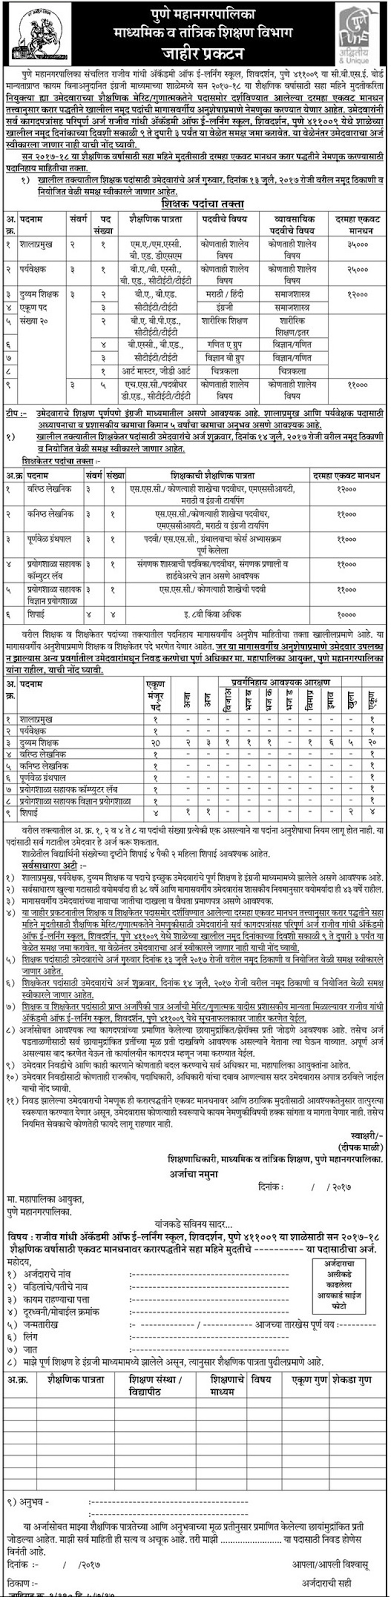 PMC Pune Municipal Corporation Recruitment Lab Assistant Secondary Teachers Peon Supervisor Recruitment